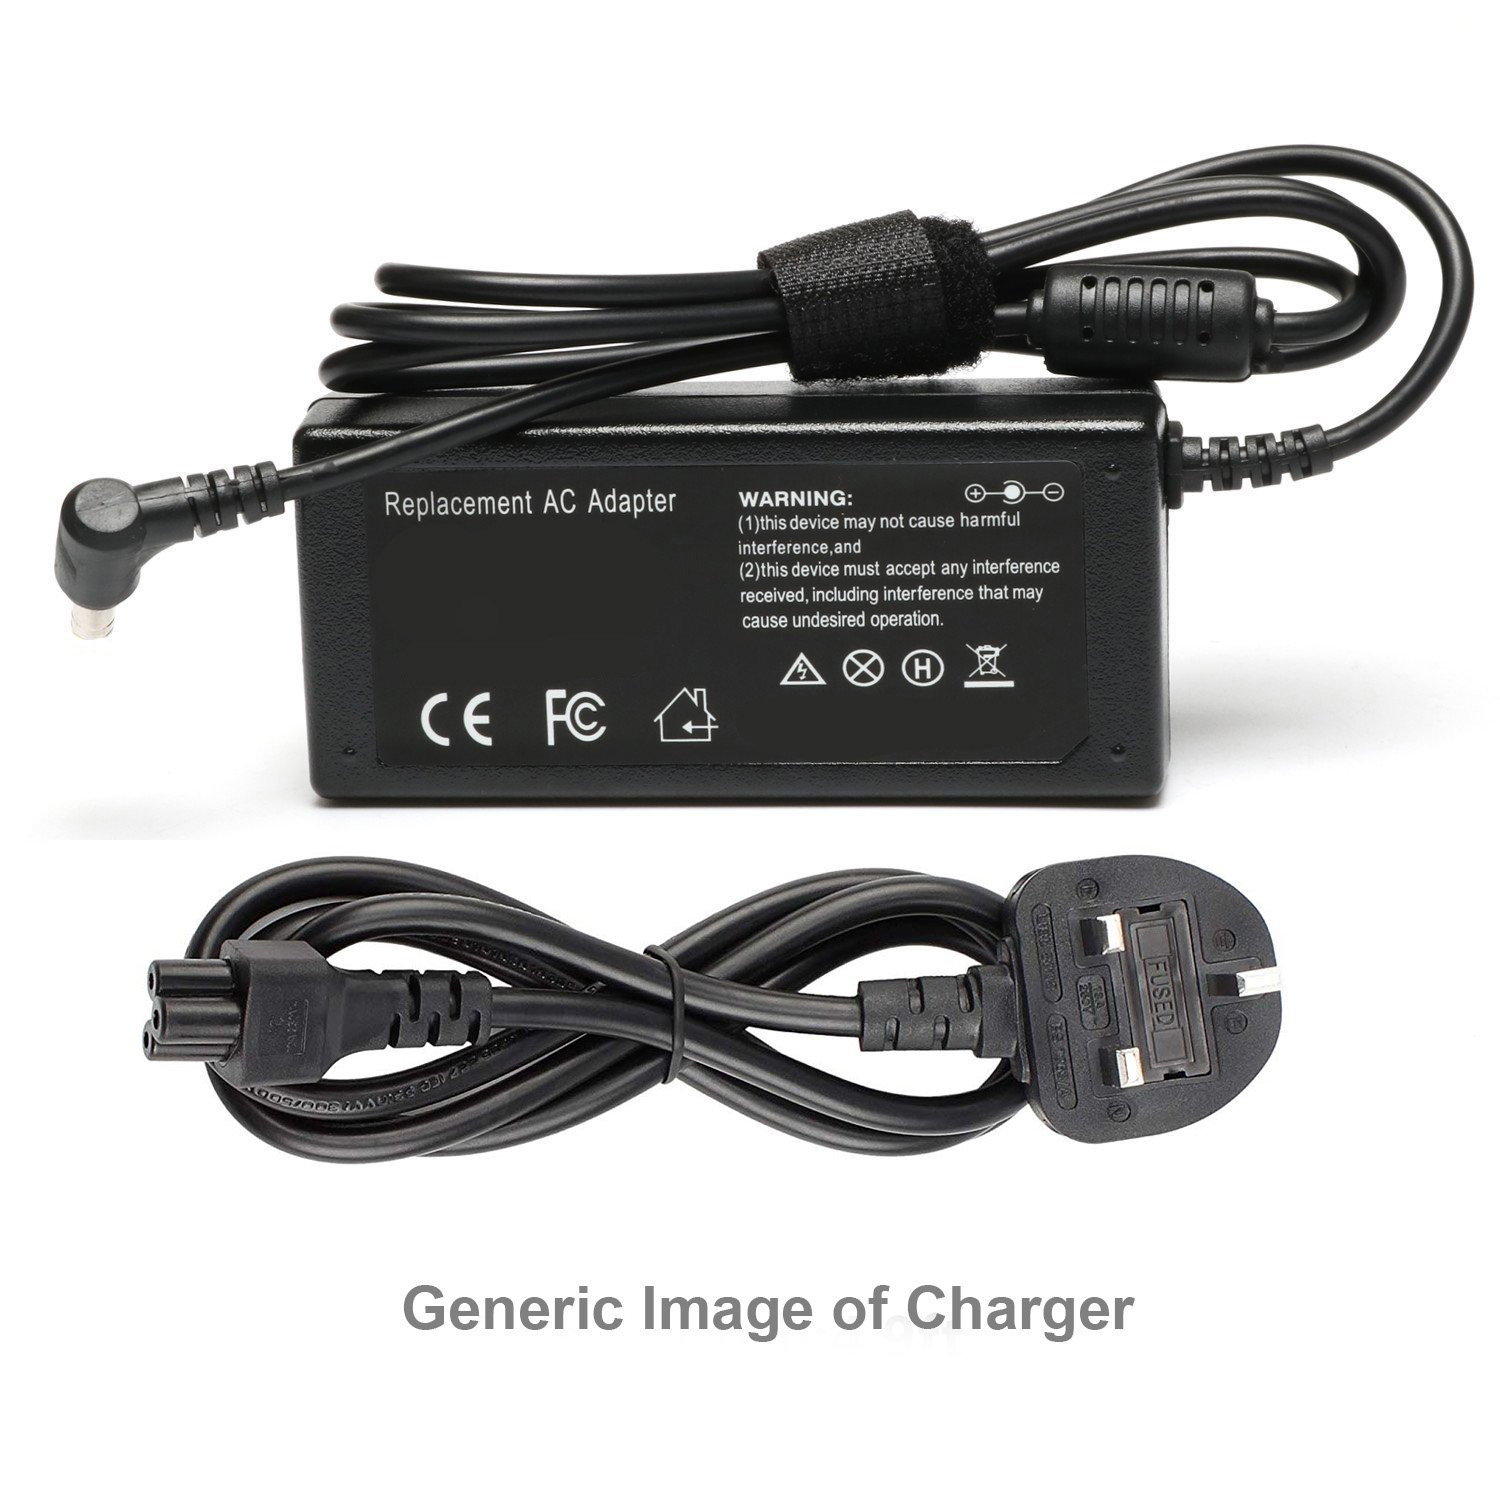 Acer Aspire 2001LMI Laptop Car Charger